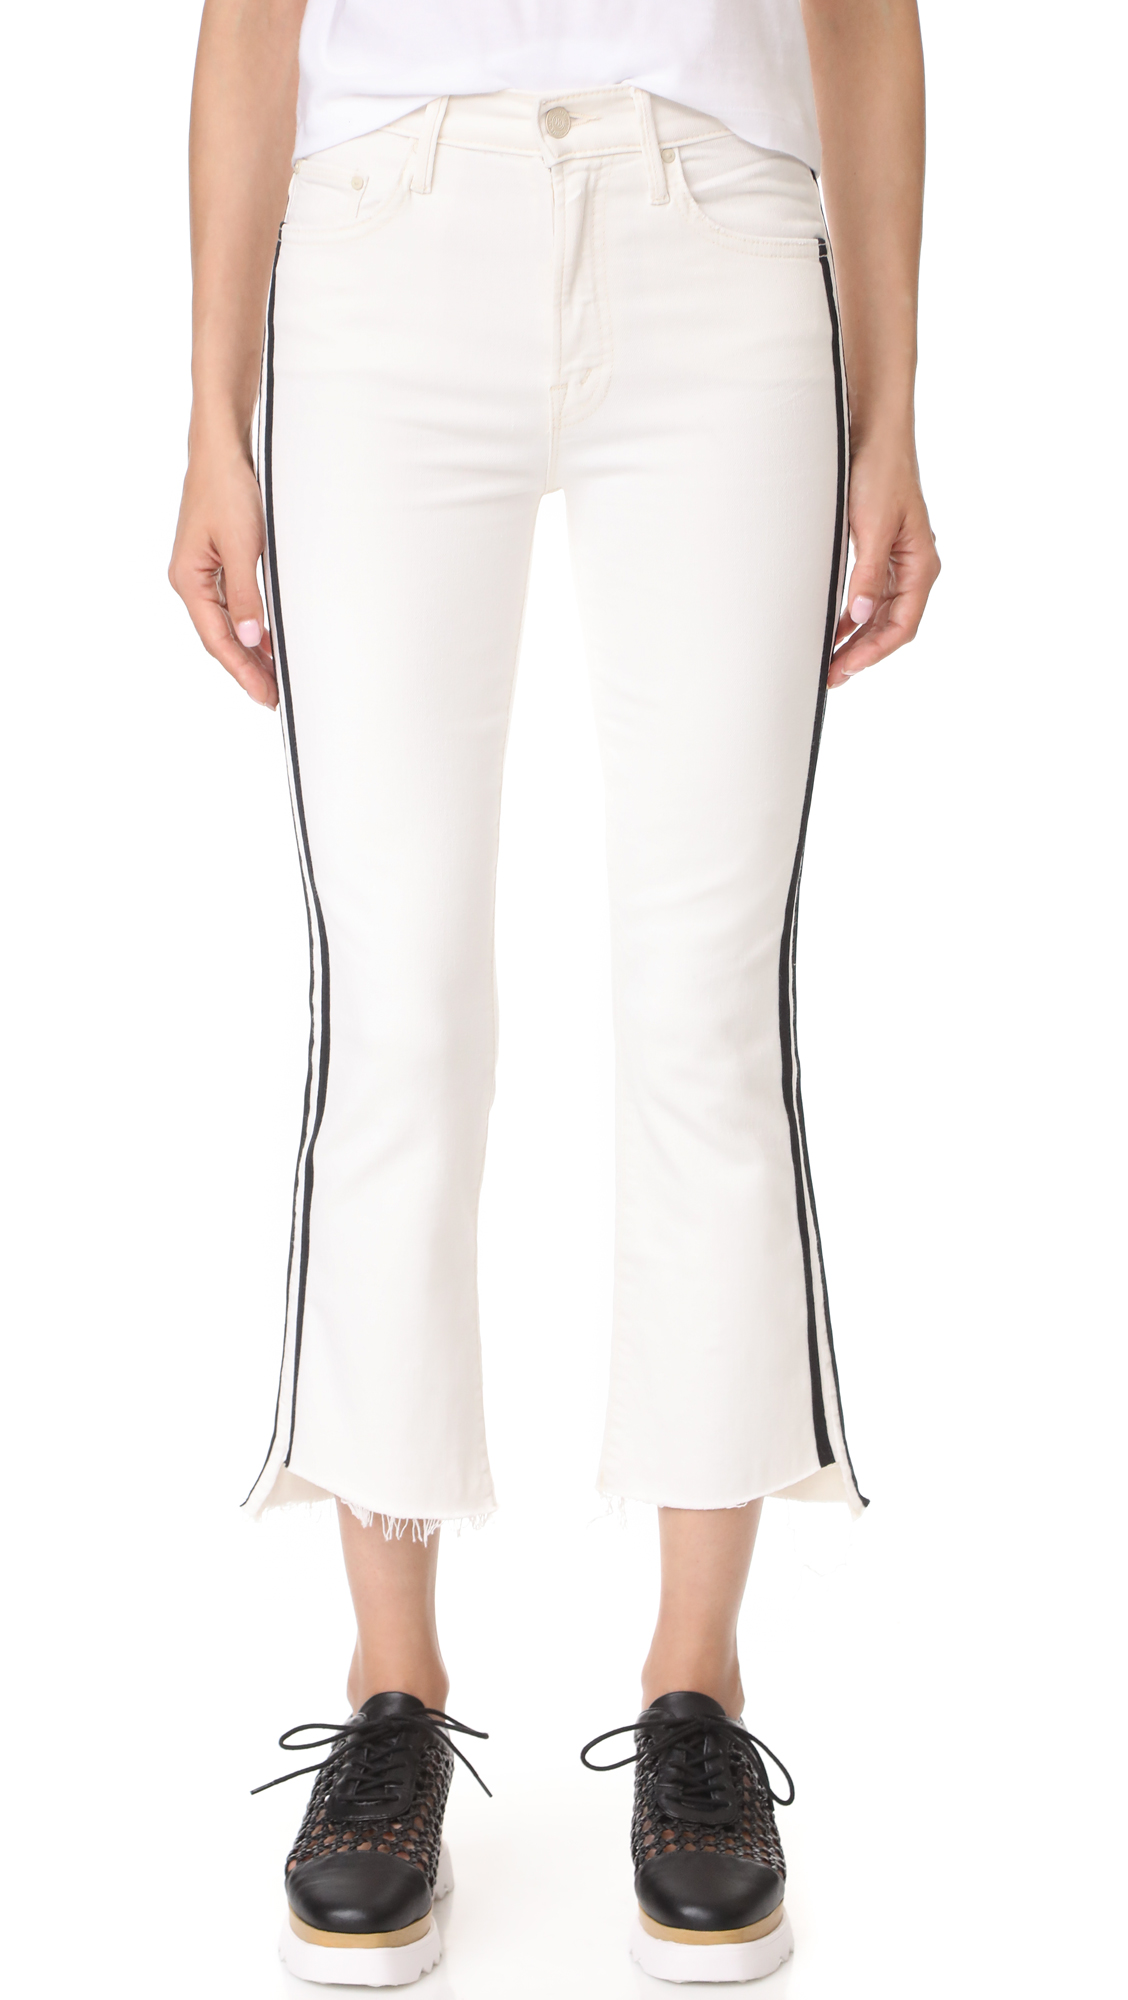 MOTHER Insider Crop Step Fray Jeans - Whipping The Racer